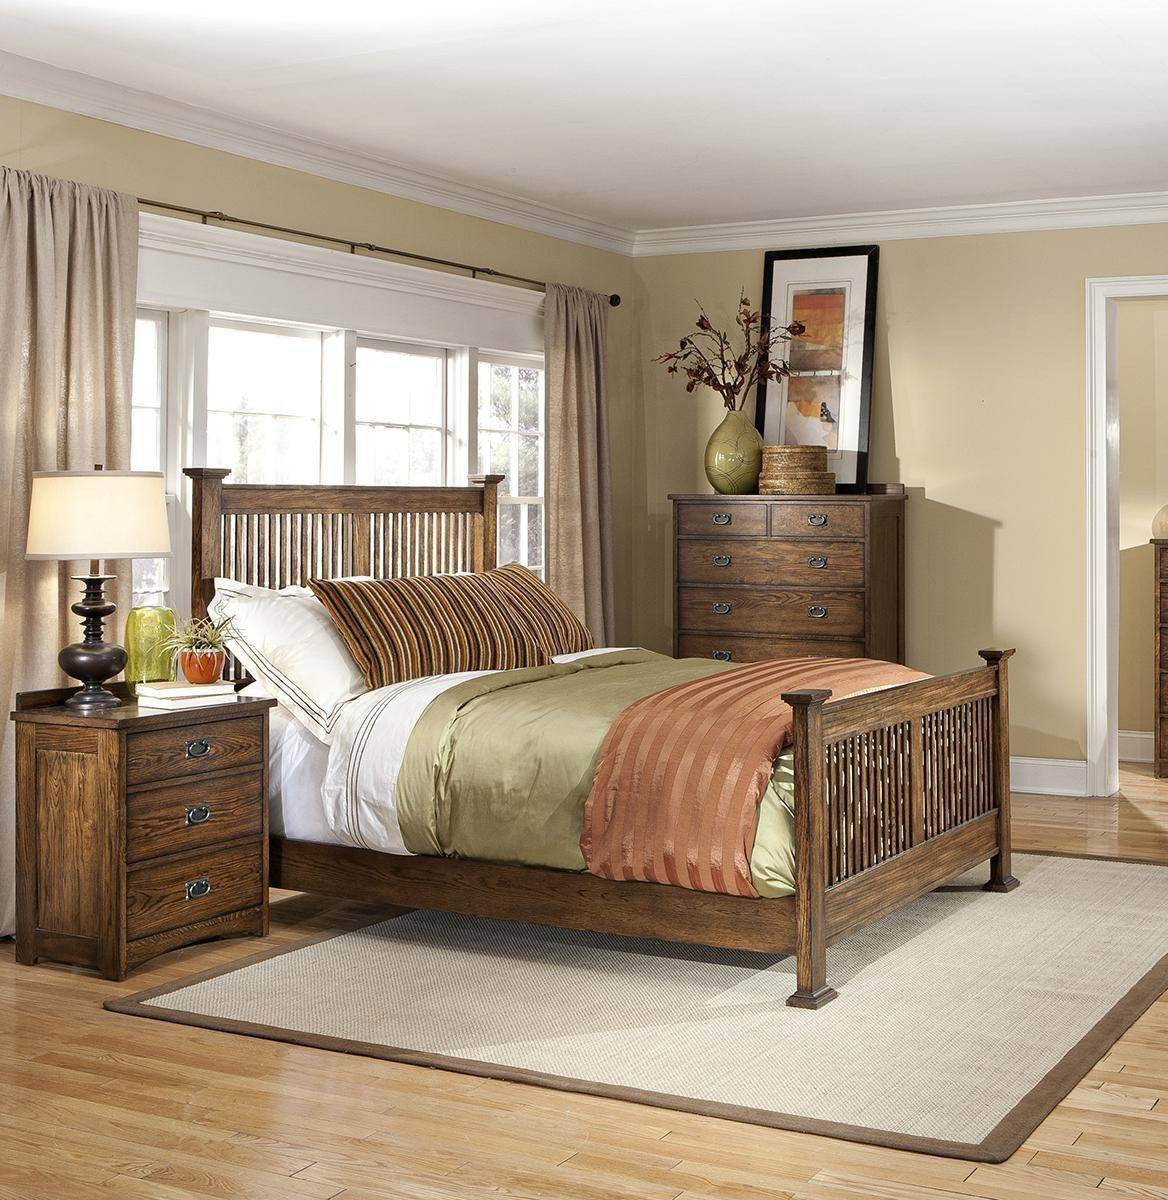 Mission Style Bedroom Furniture New A America Mission Hill King Panel Bed In Brown Harvest Wood